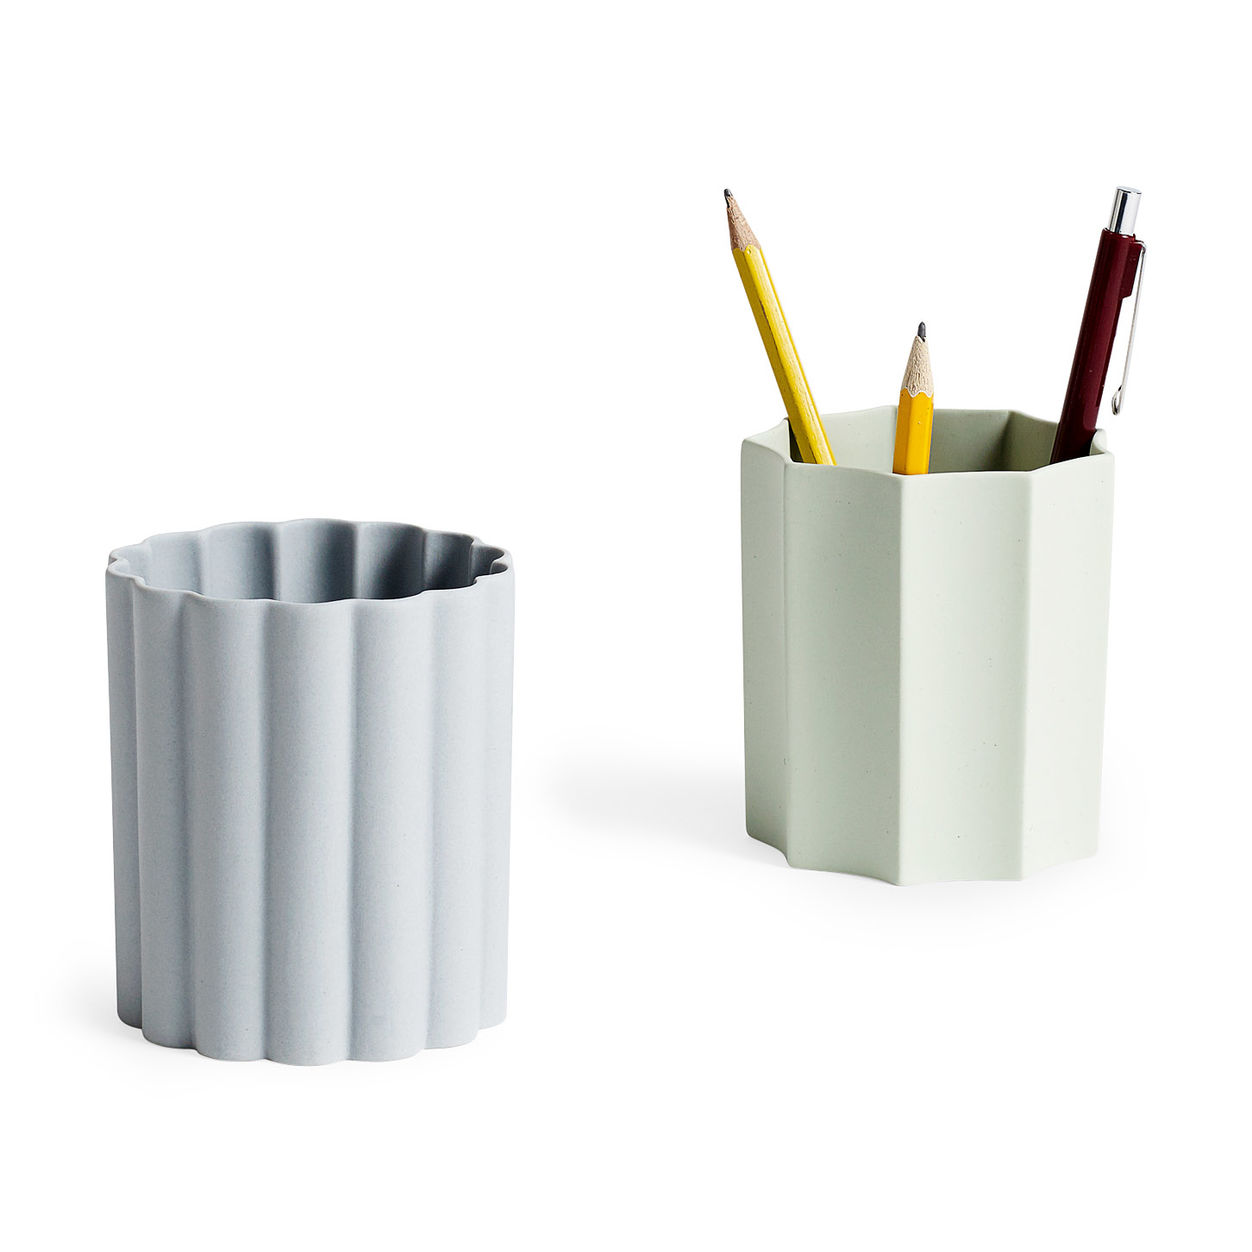 uniquely shaped geometric pencil holders